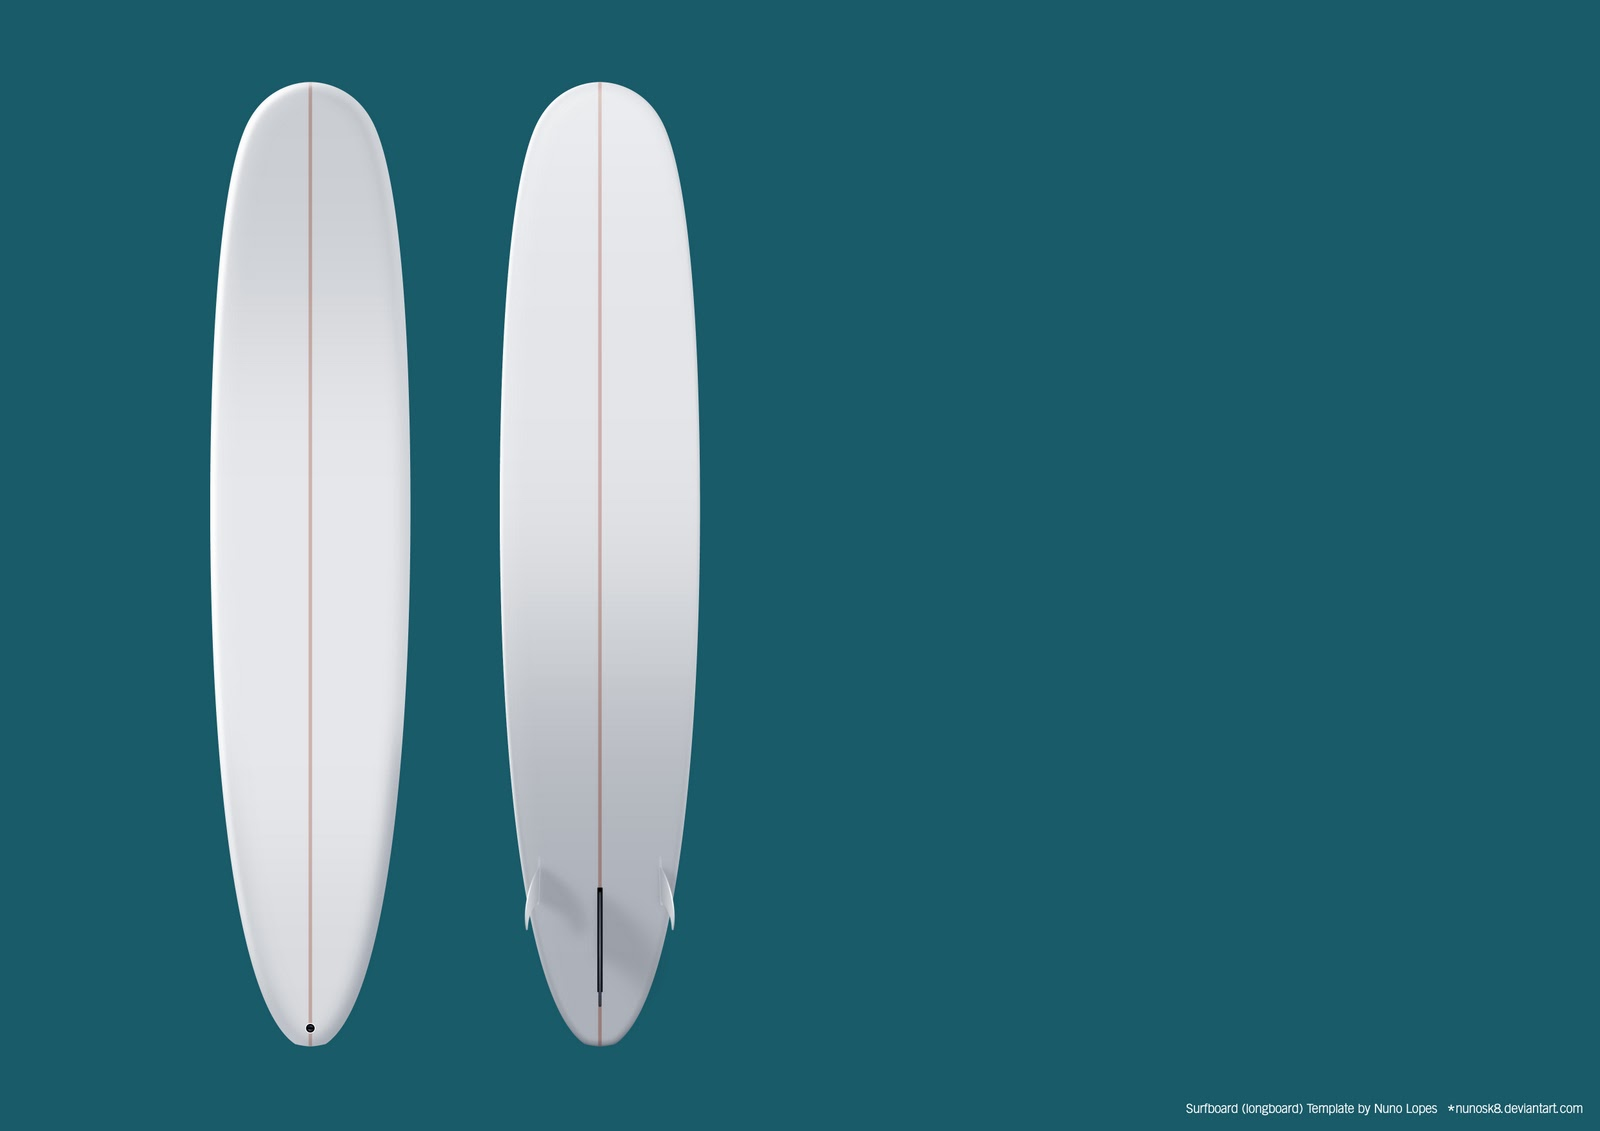 Psd files free download surfboards surfboard templates for Making a surfboard template